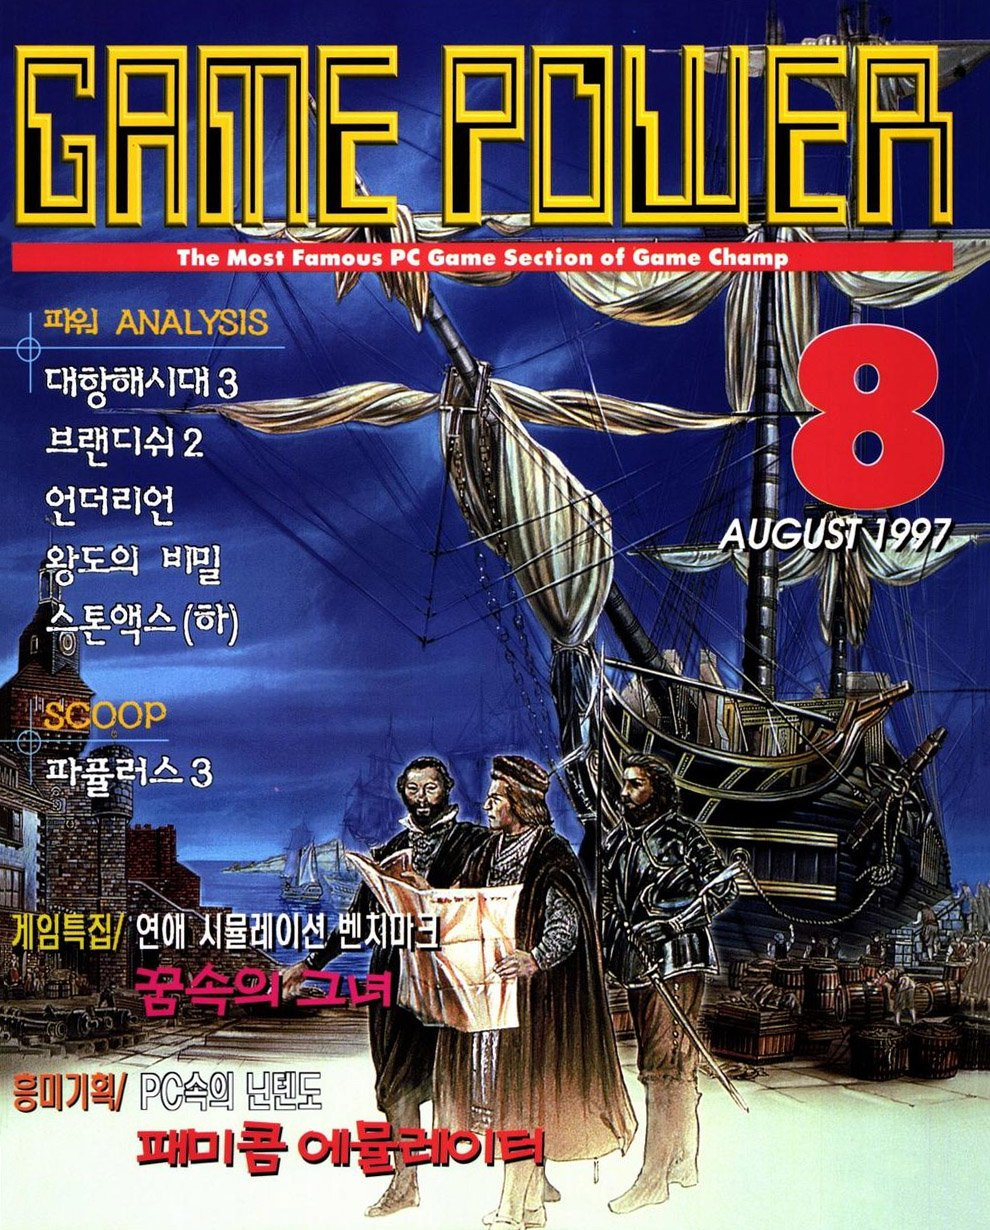 Game Power Issue 041 (August 1997)